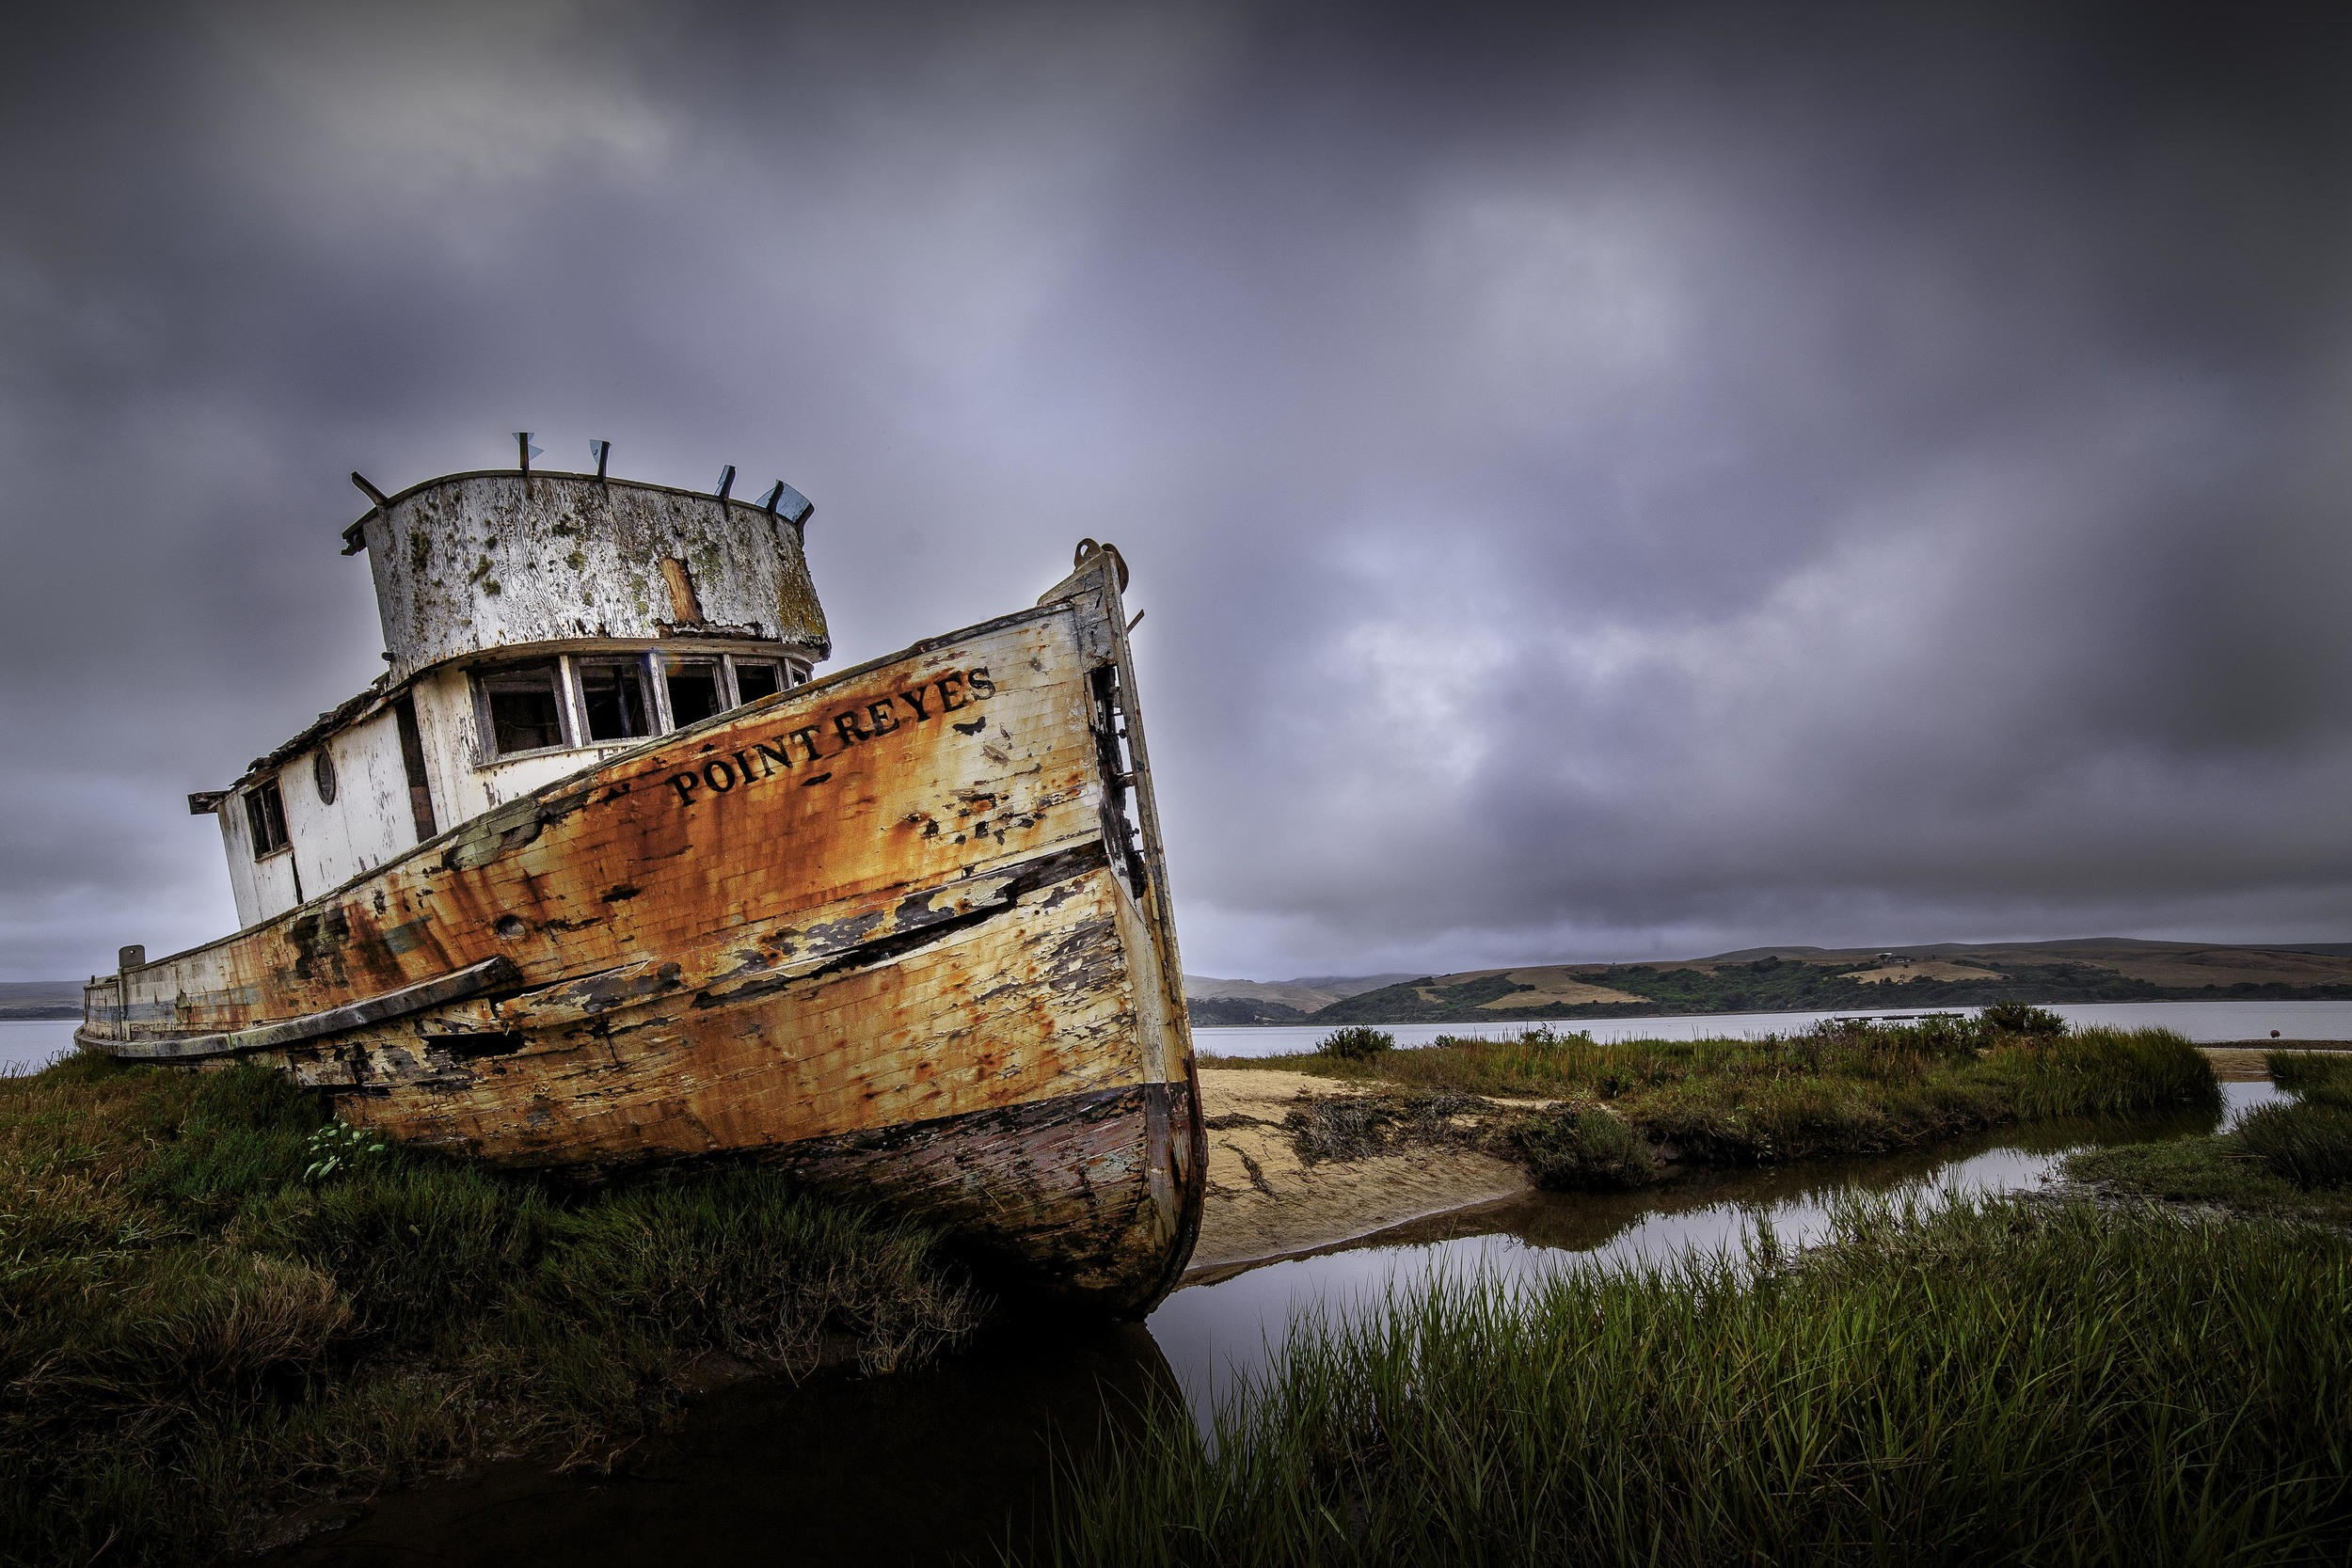 The S.S. Point Reyes was an oyster vessel before it became unseaworthy and was abandoned during a storm off the coast of California, where it drifted ashore and still rests on the foggy shoreline of the Tamales Bay to this day.